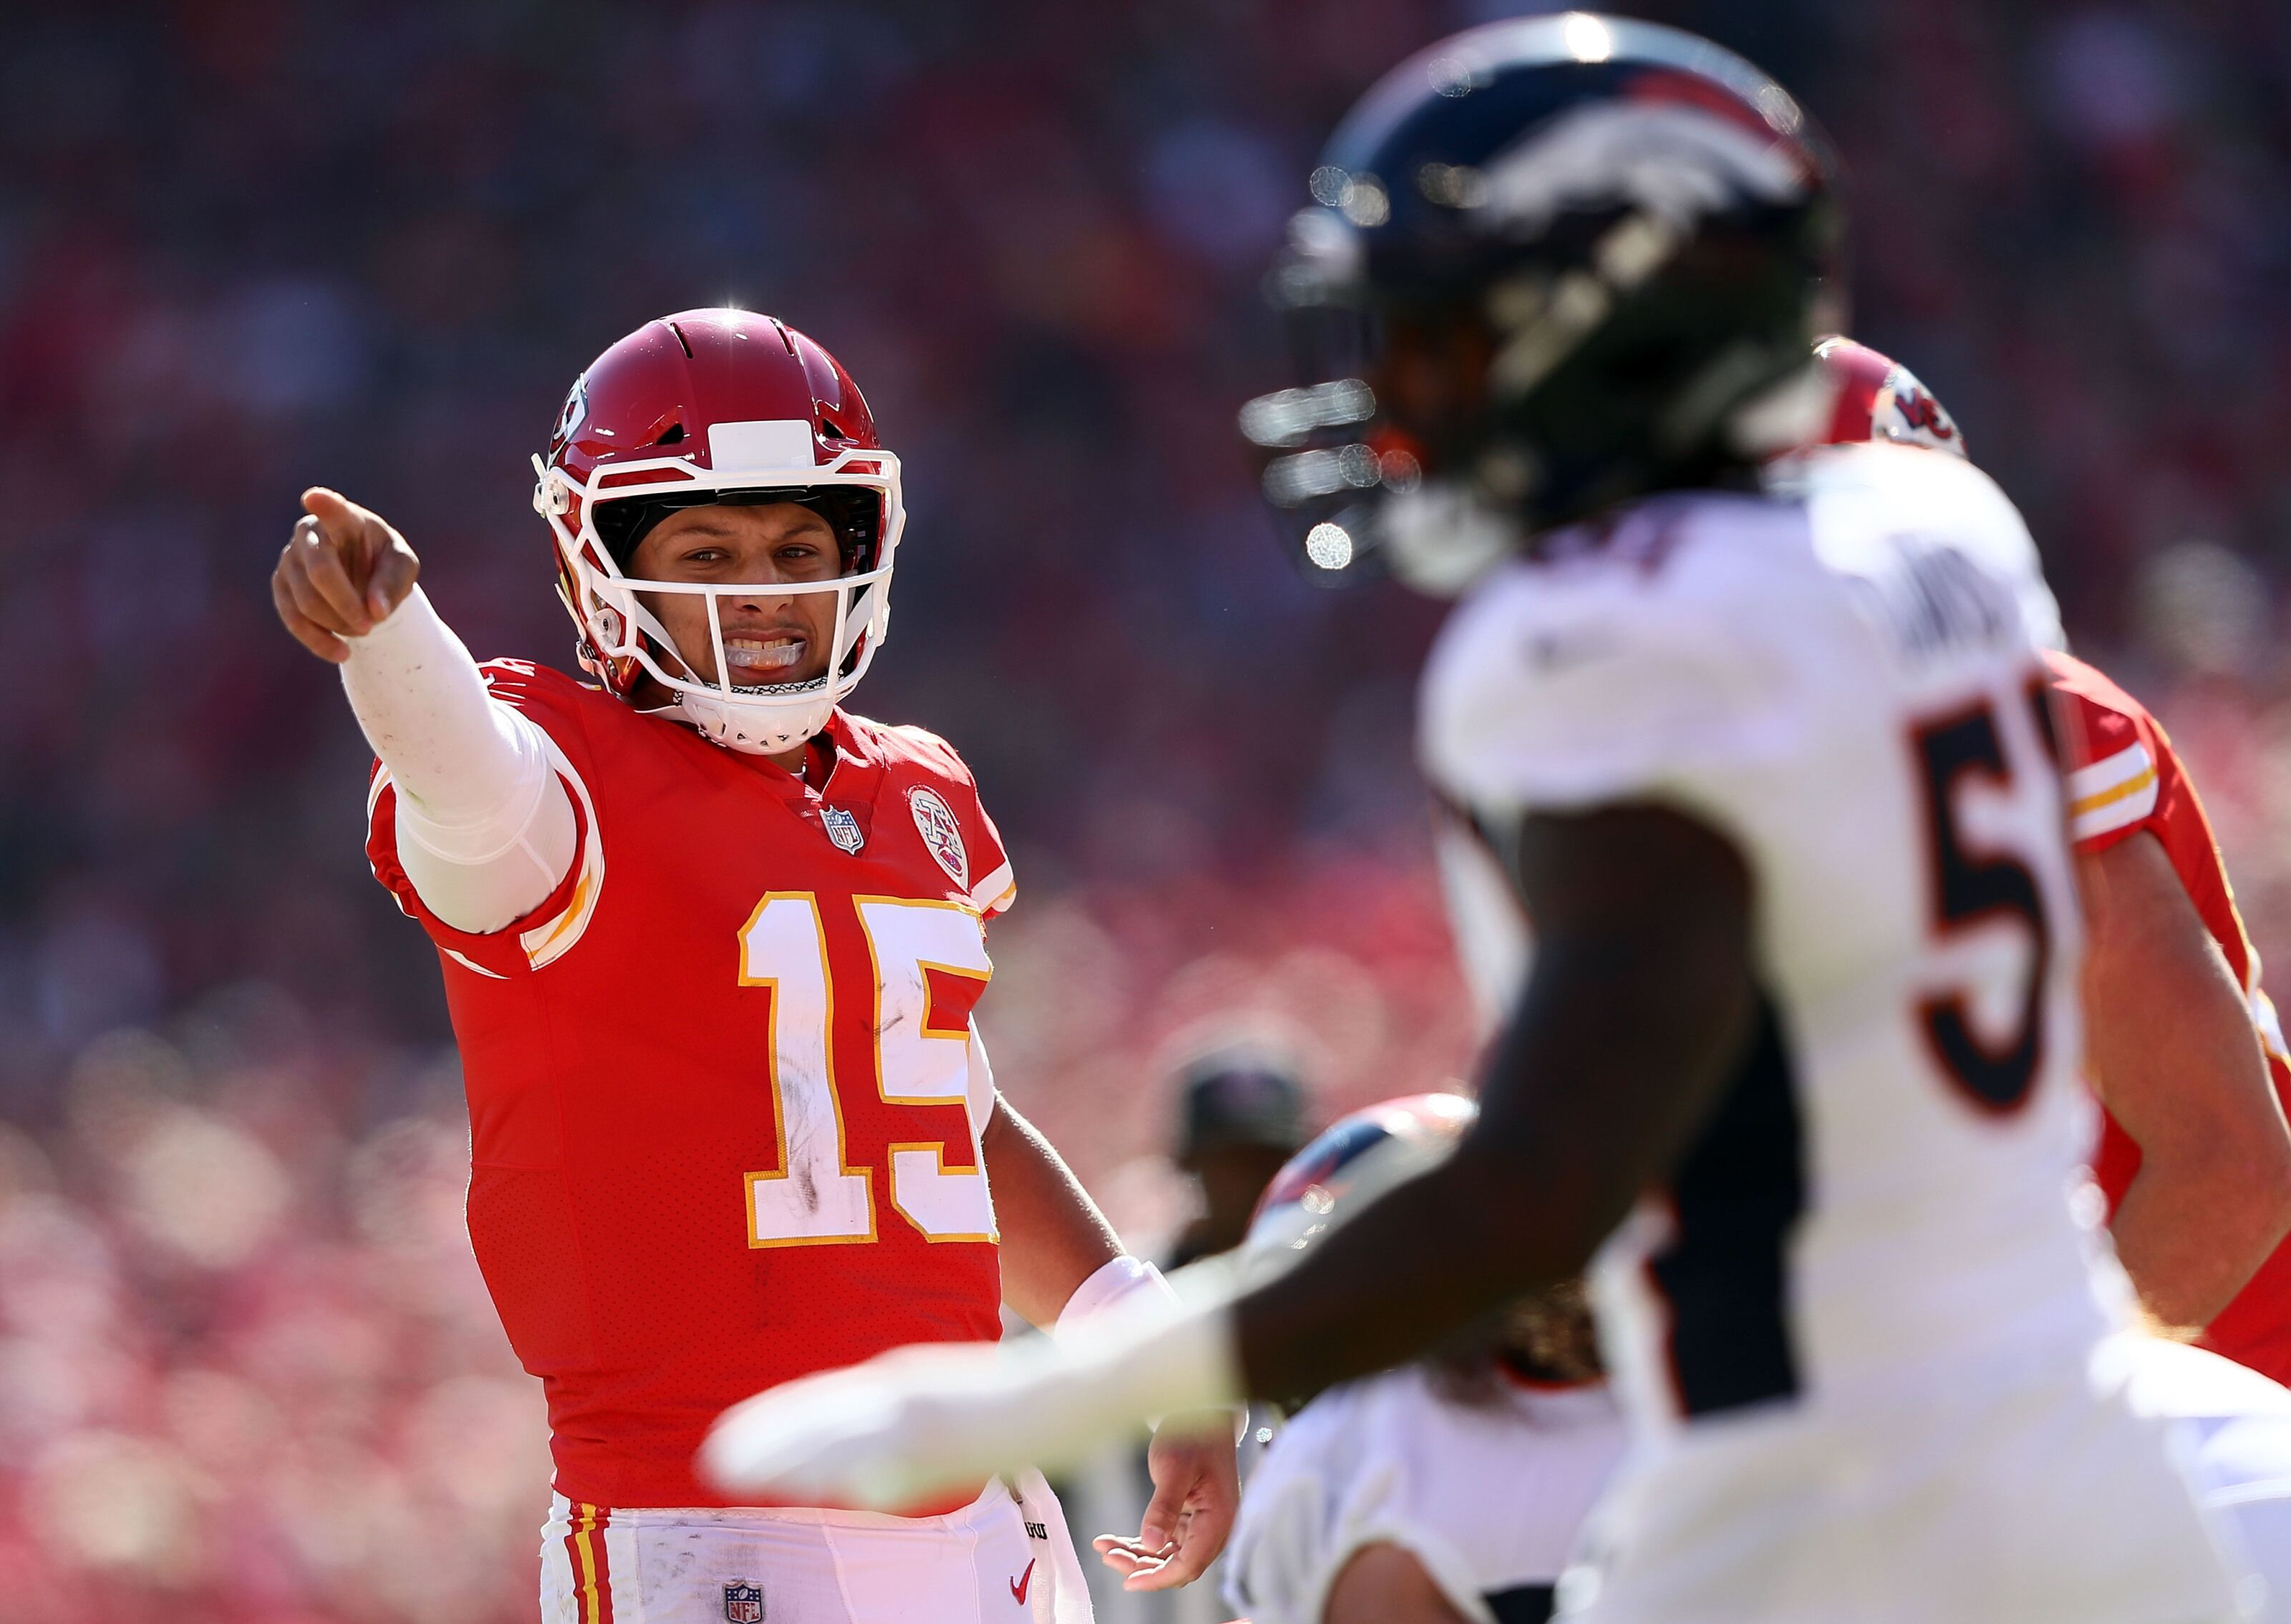 Chiefs vs. Broncos predictions: Recent struggles shake writers' confidence